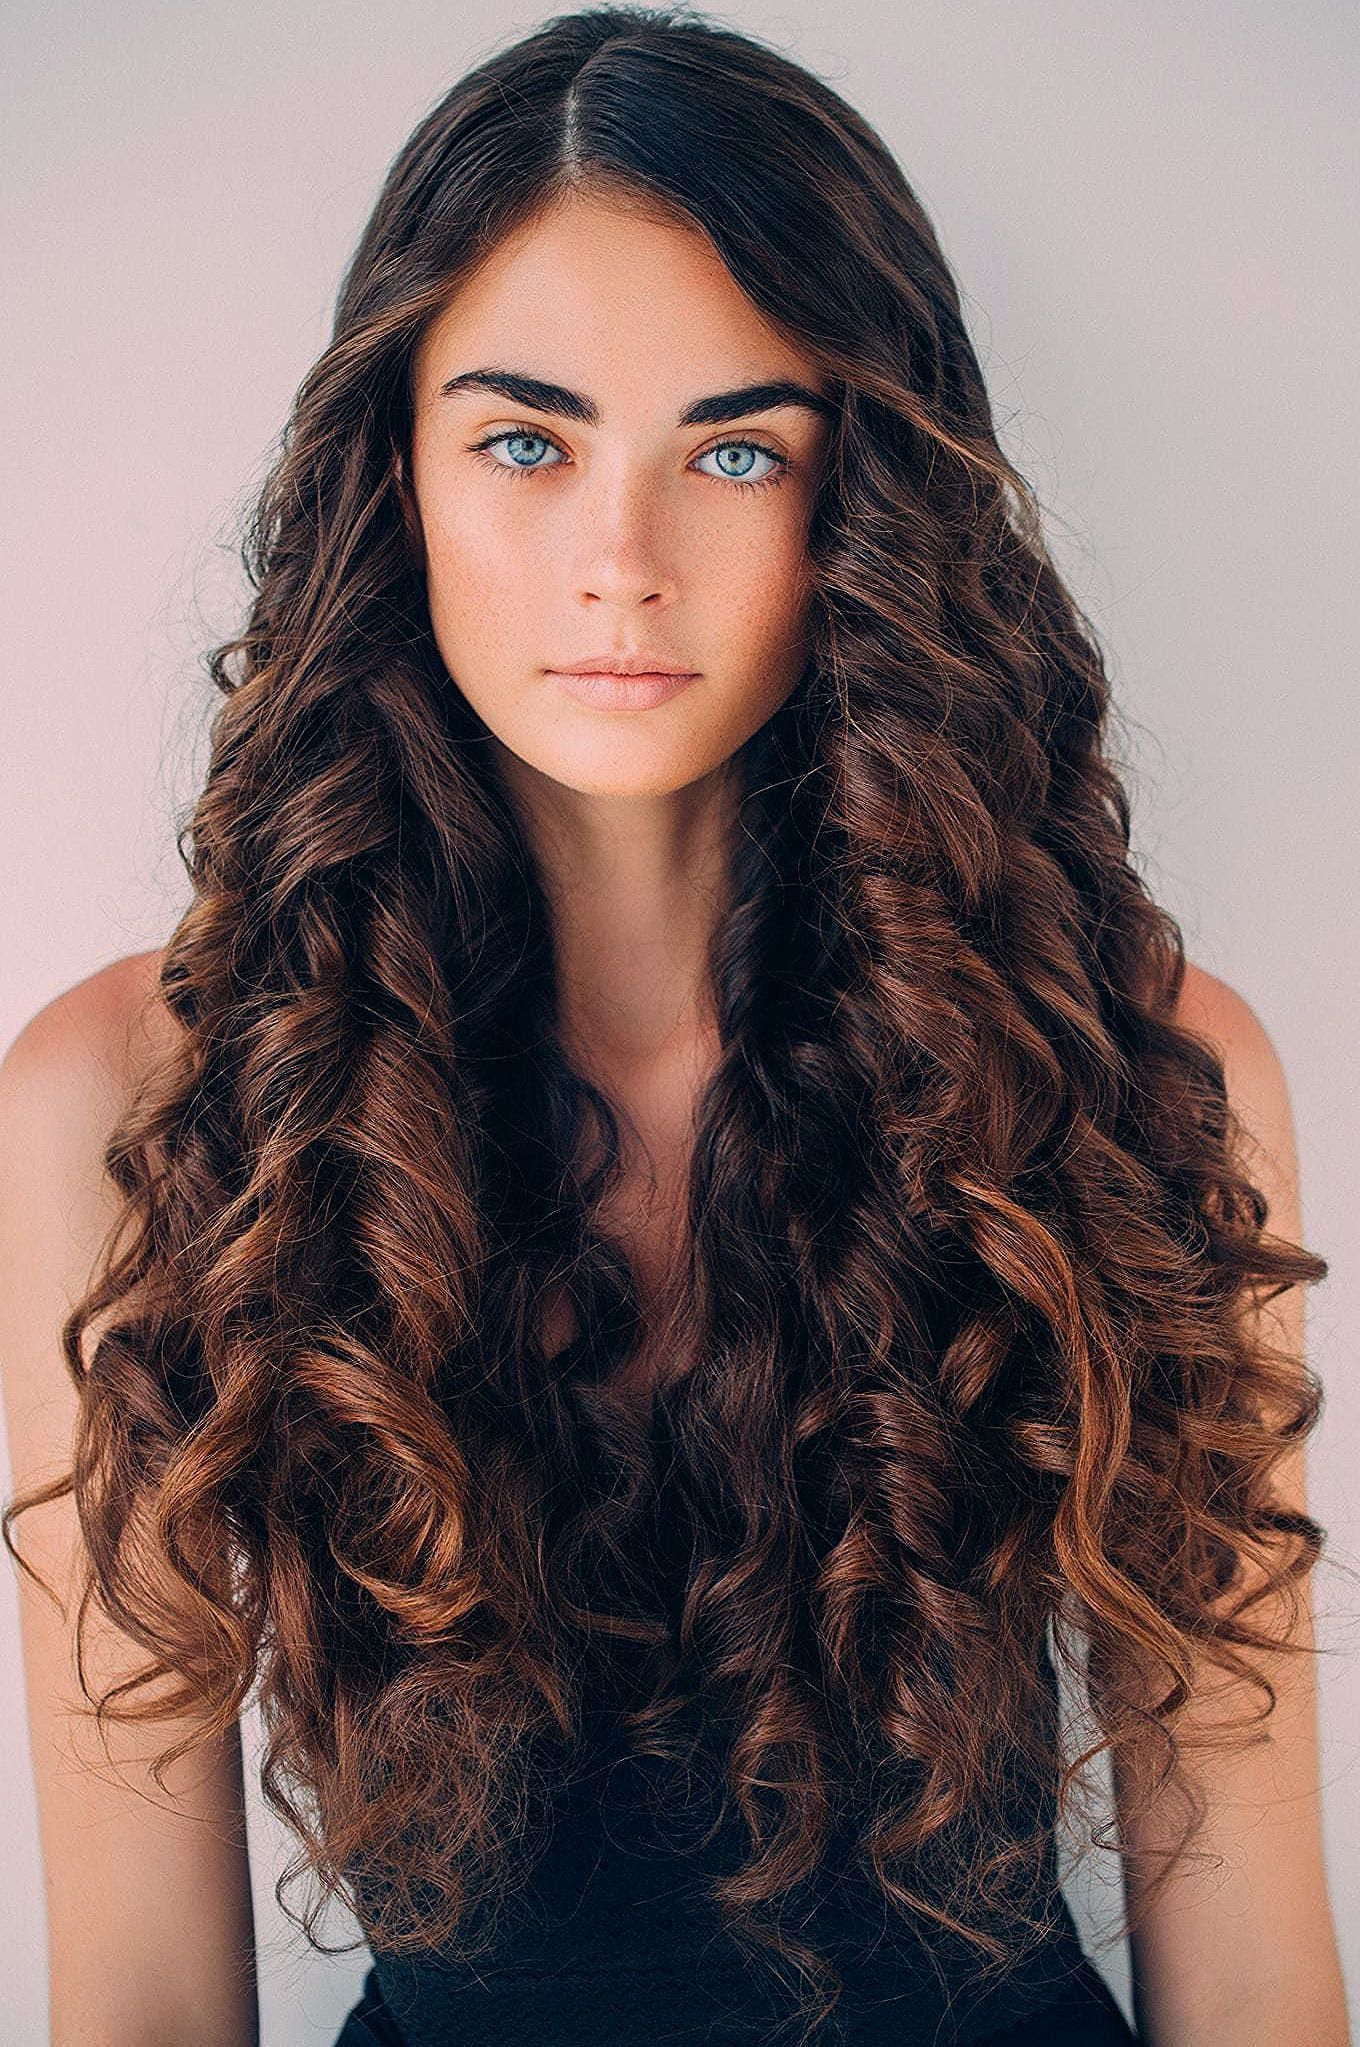 Curly Hairstyles For Long Hair 19 Kinds Of Curls To Consider Tight Curled Hairs In 2020 Curly Hair Styles Curly Hair Styles Naturally Curled Hairstyles